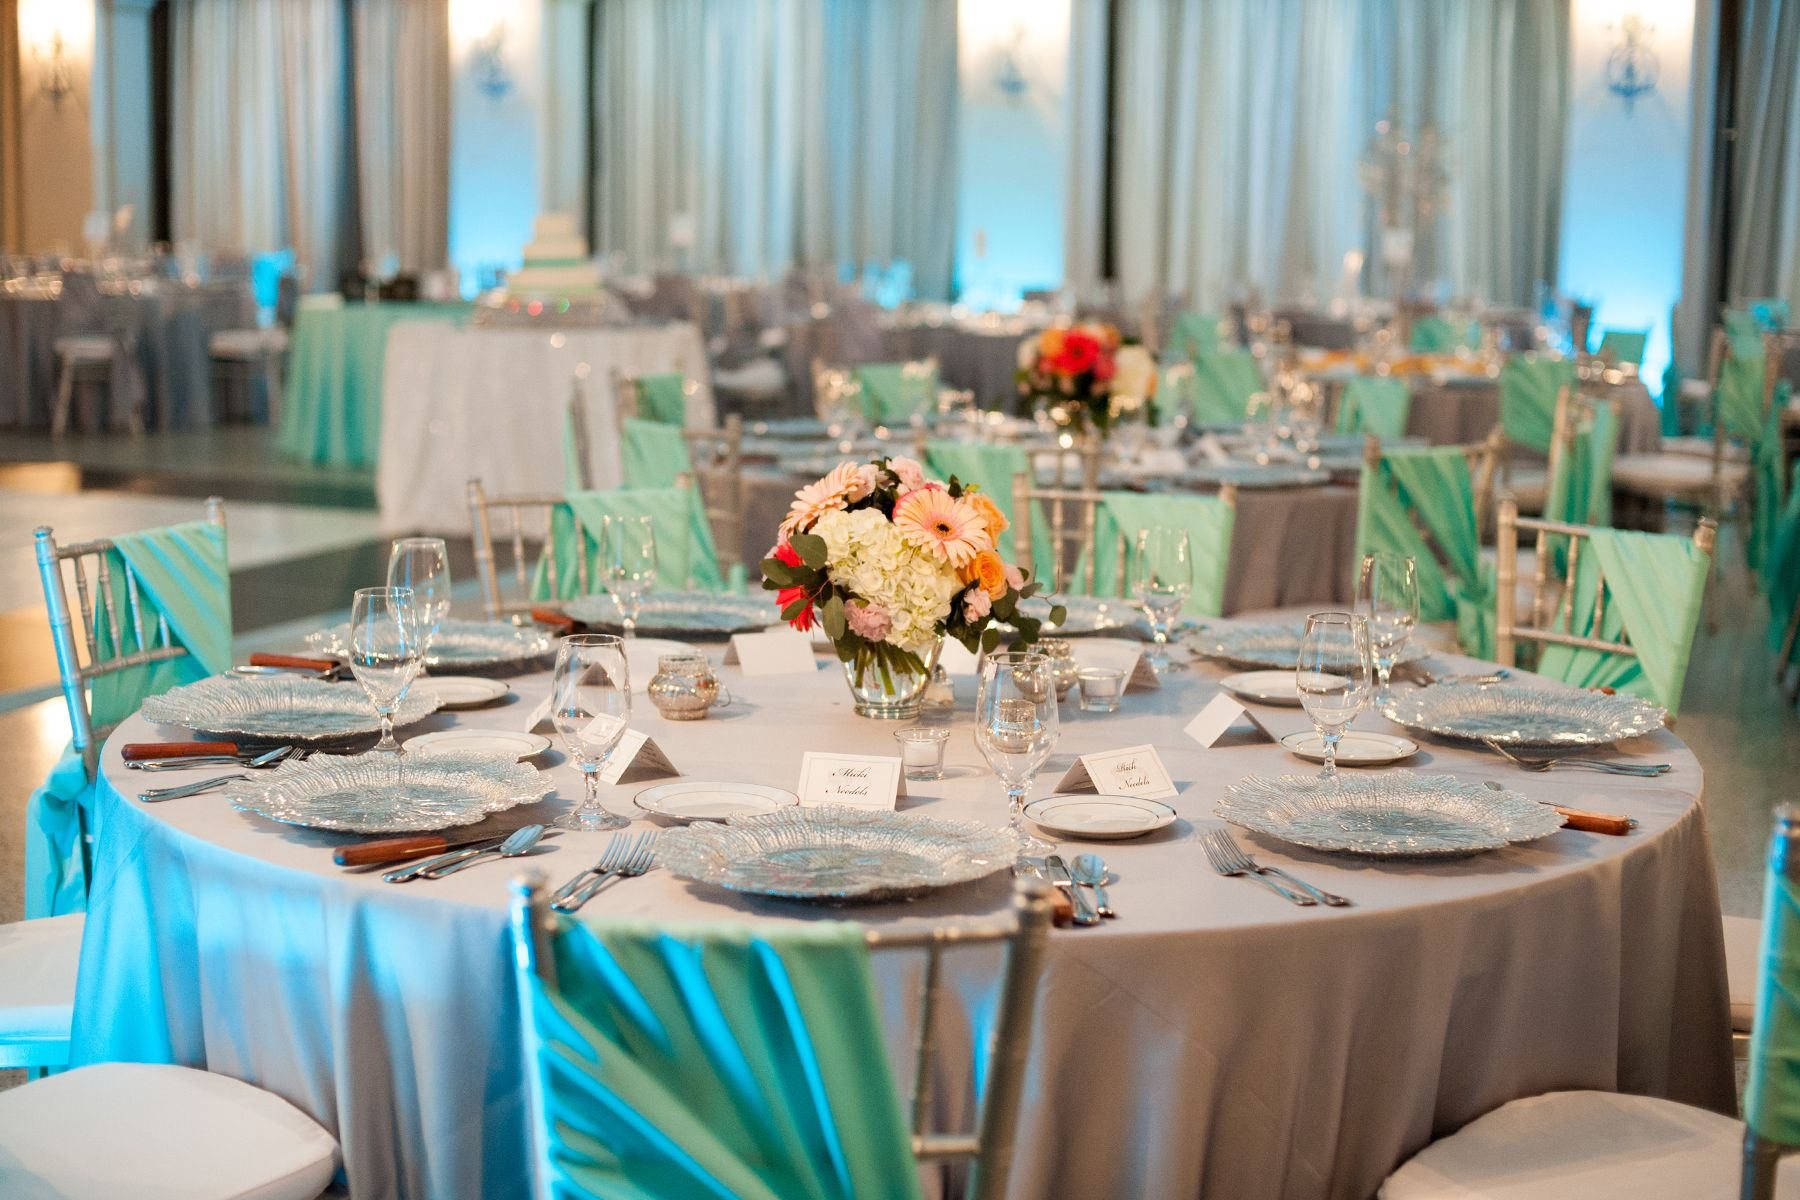 Image By Mark Garber Photography Flowers By Sherwood Florist Catering By Elite And Rental Decor By Prime Time Party R Rental Decorating Wedding Rentals Prime Time